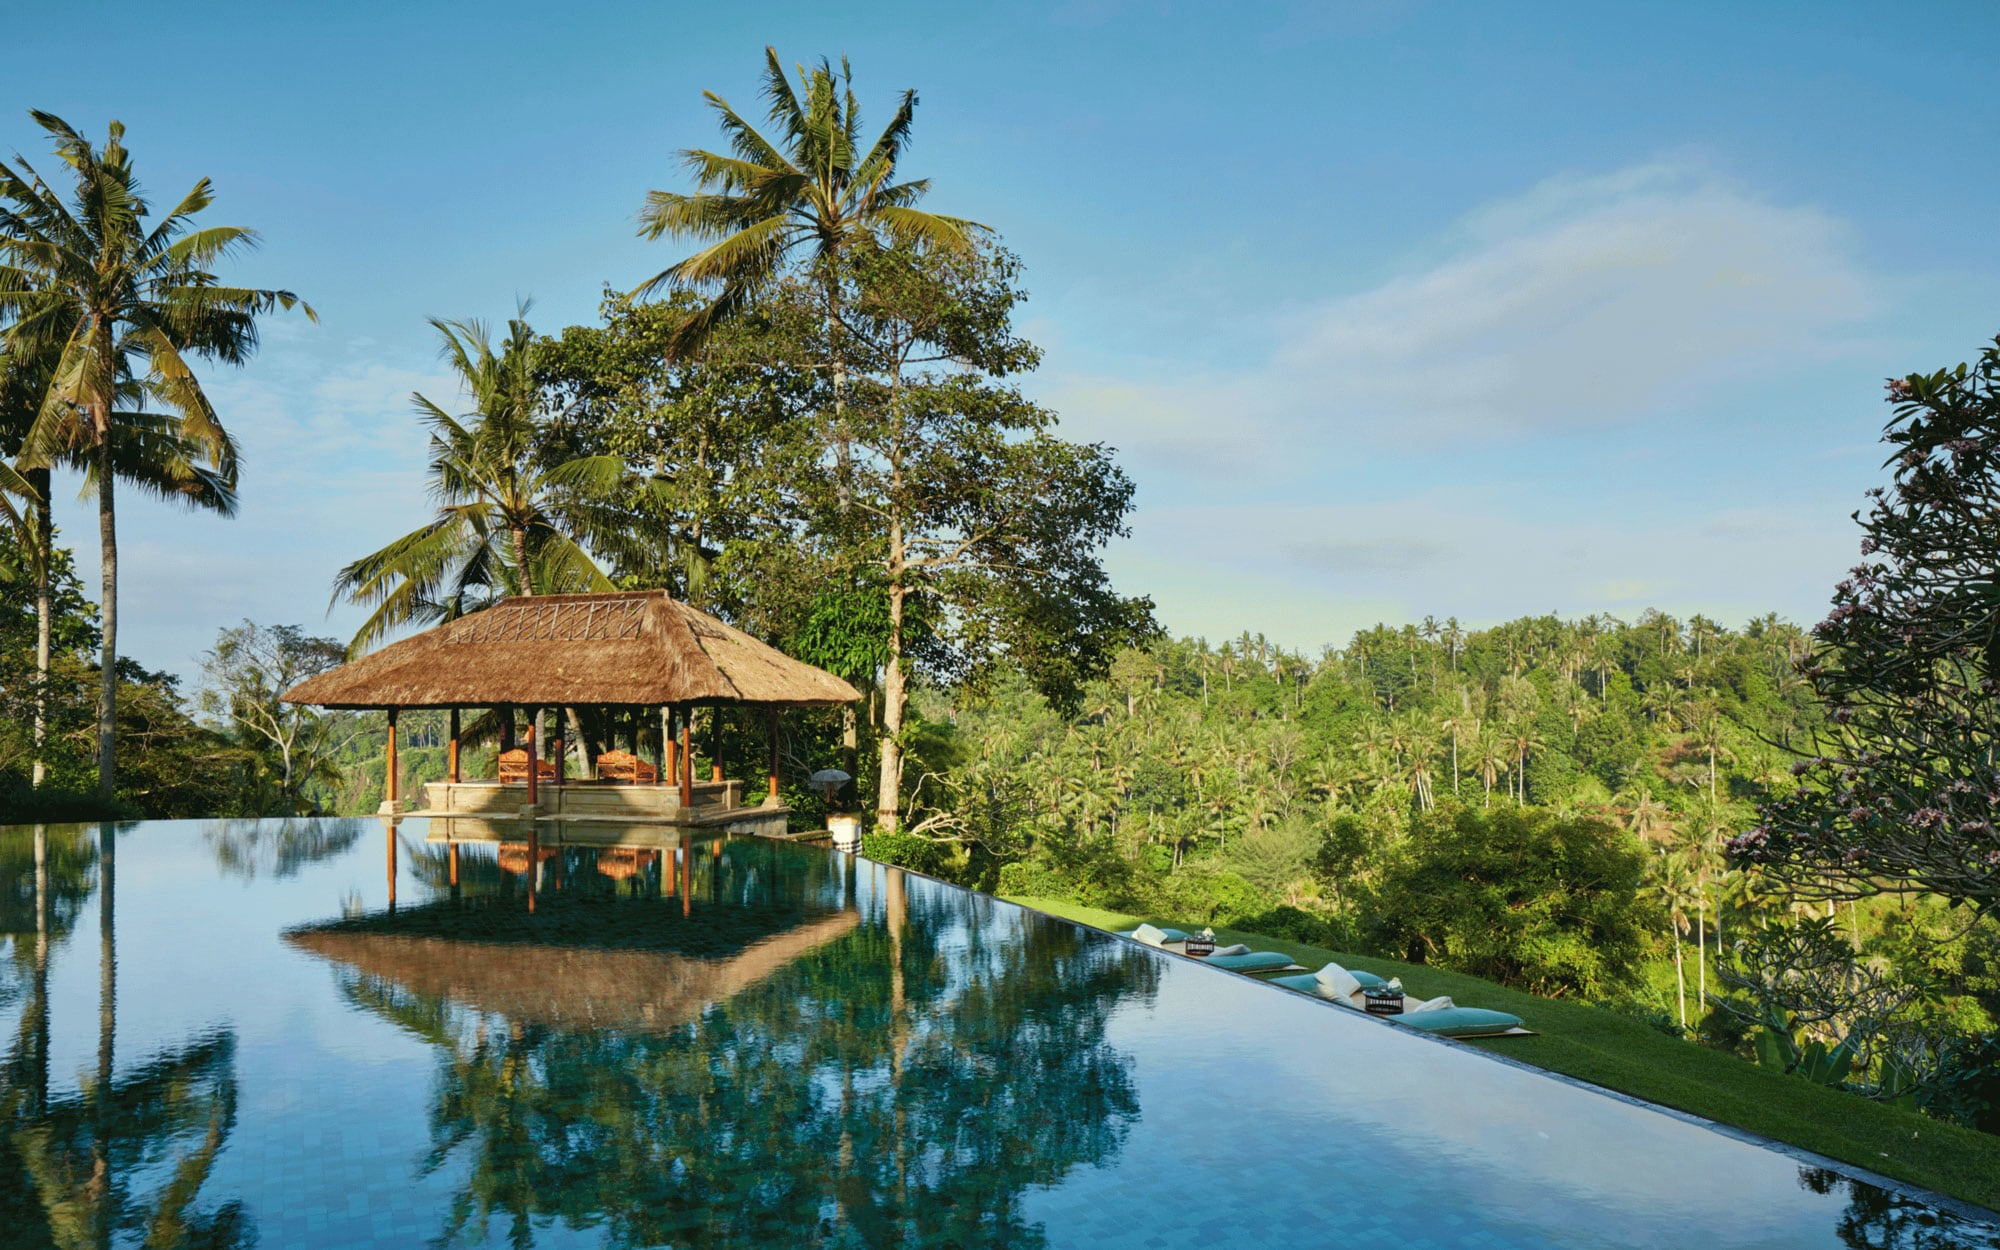 Best Hotels in Ubud for your Honeymoon